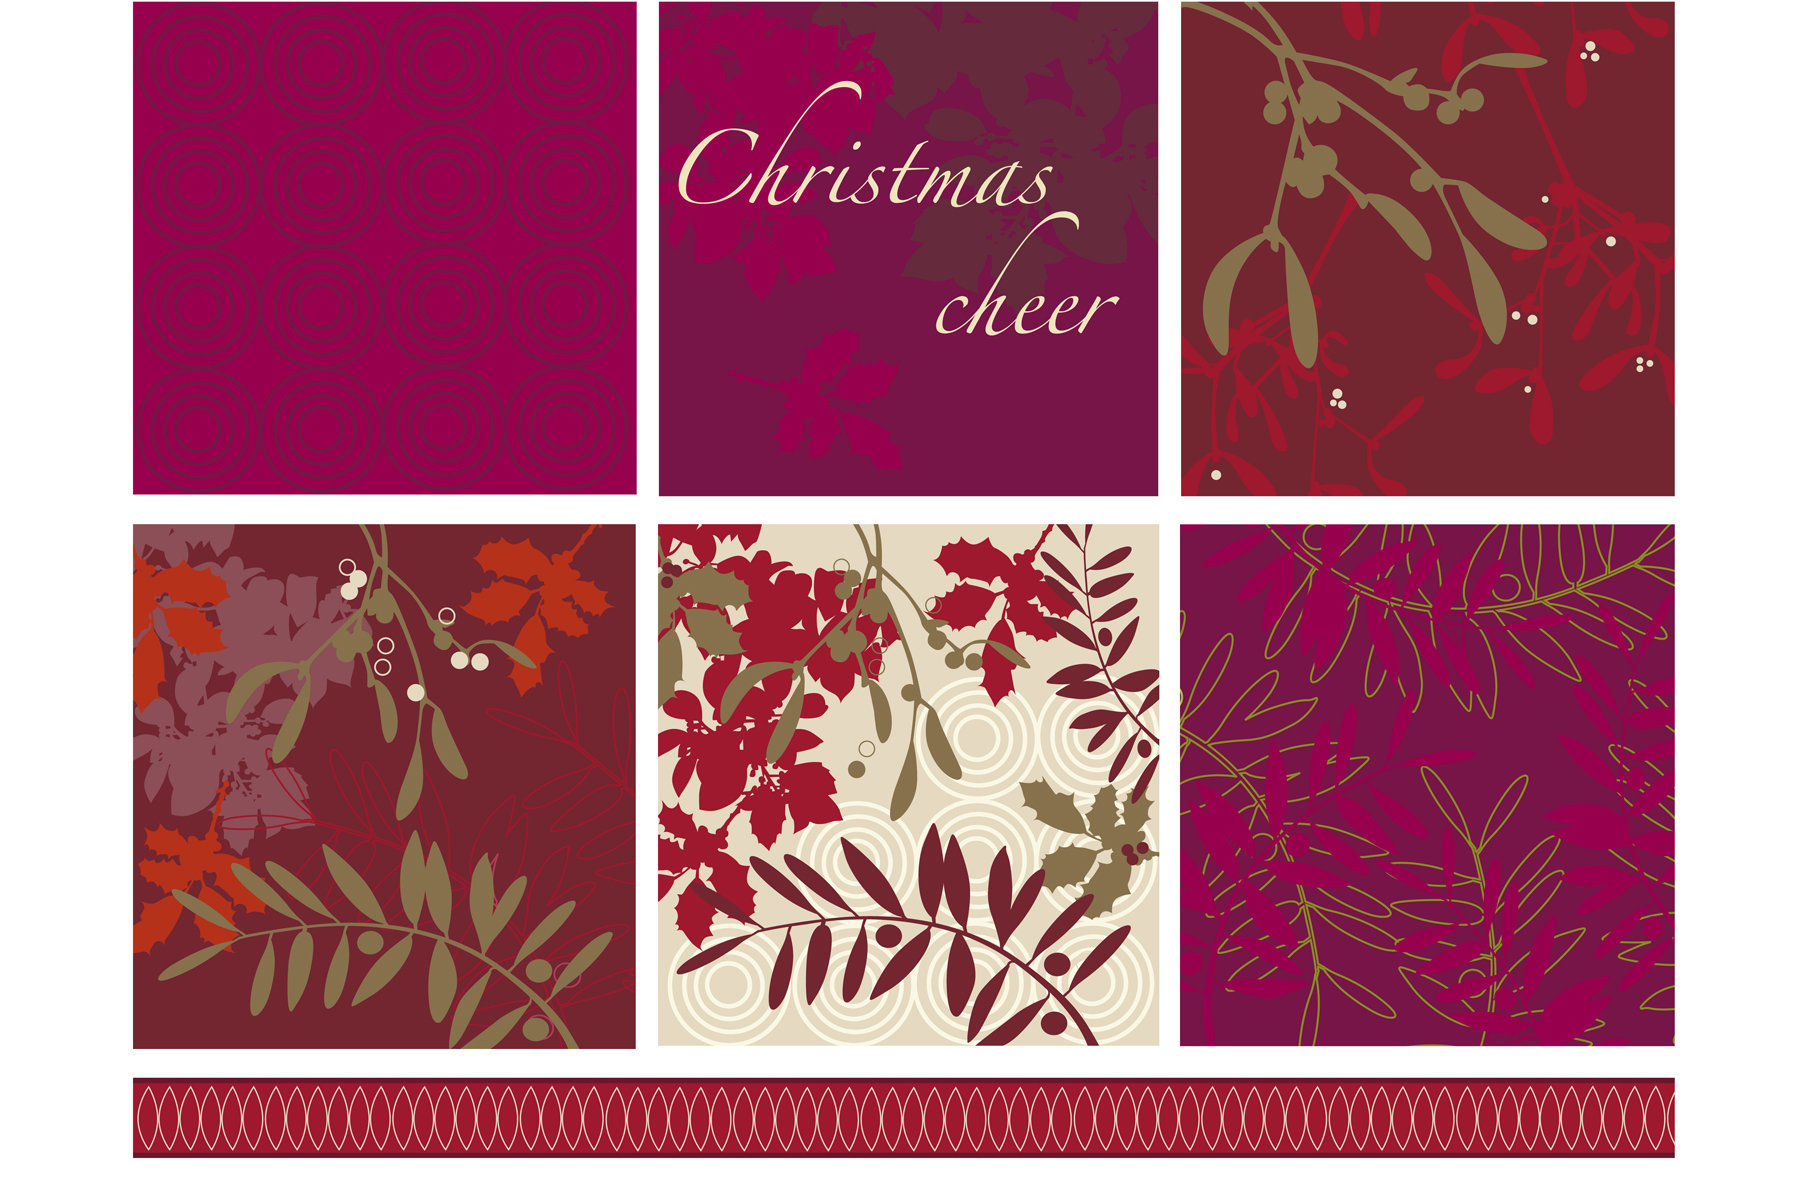 A Traditional Christmas scheme. For use on seasonal decor, packaging and paper goods.